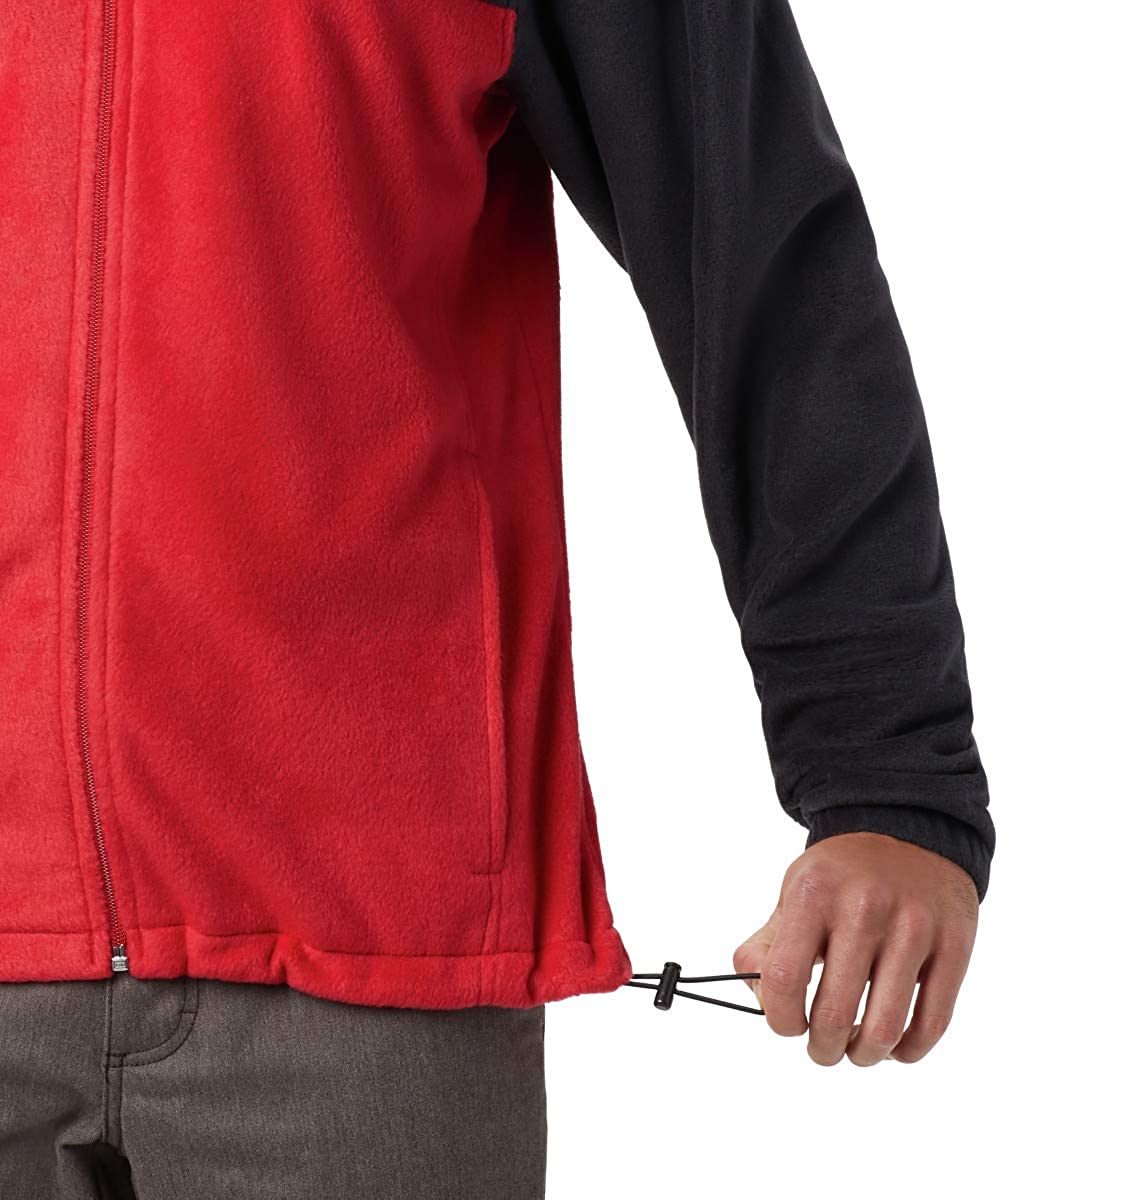 Black Soft Fleece with Classic Fit Mountain red Columbia Mens Steens Full Zip 2.0 4X